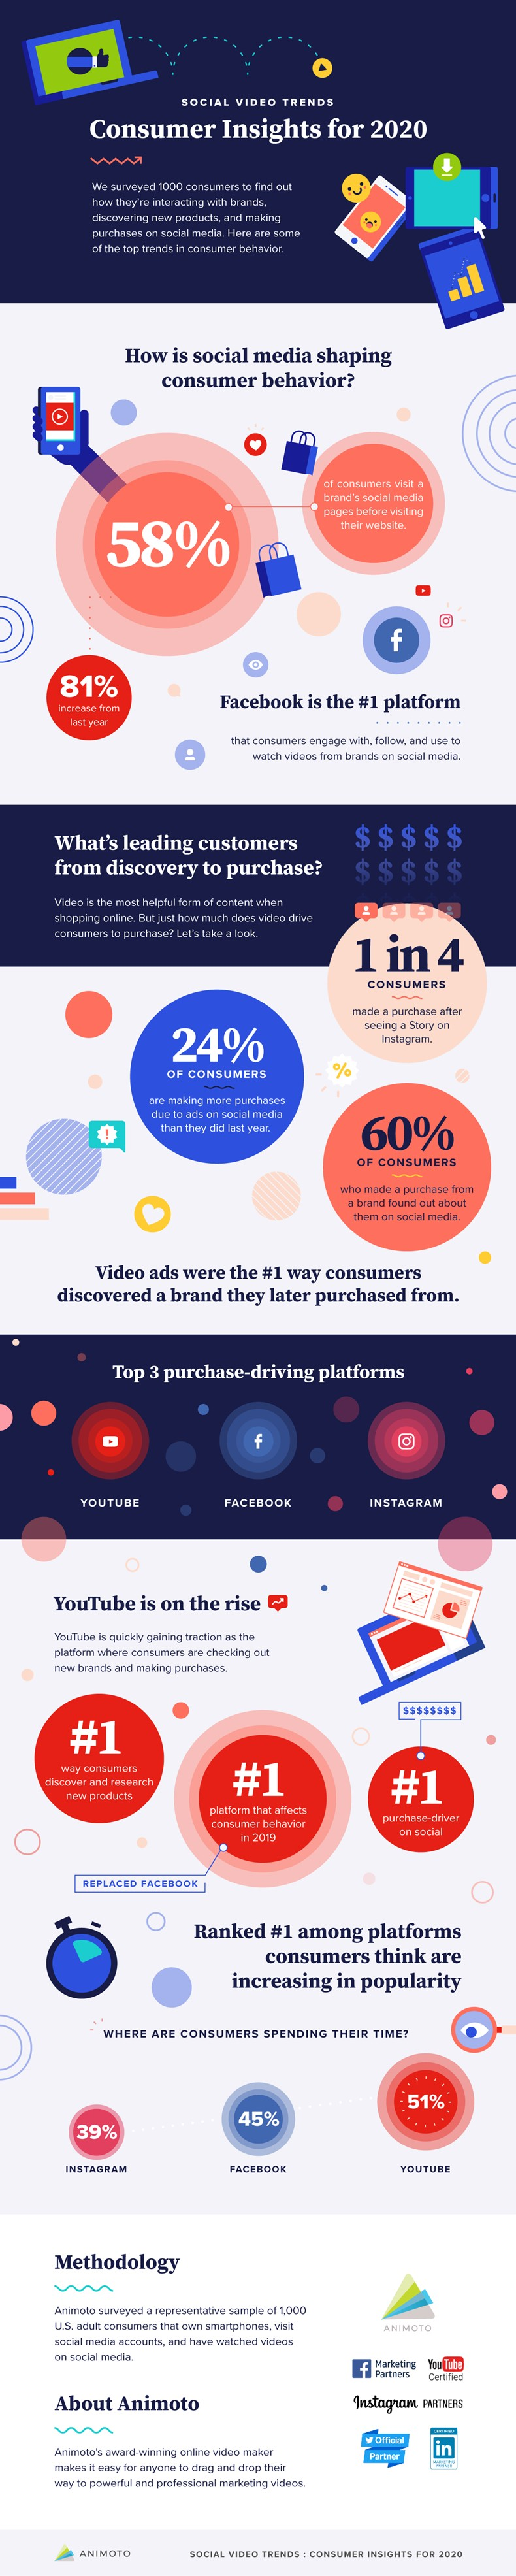 Social Media Video in 2020: Marketing and Consumer Trends 1